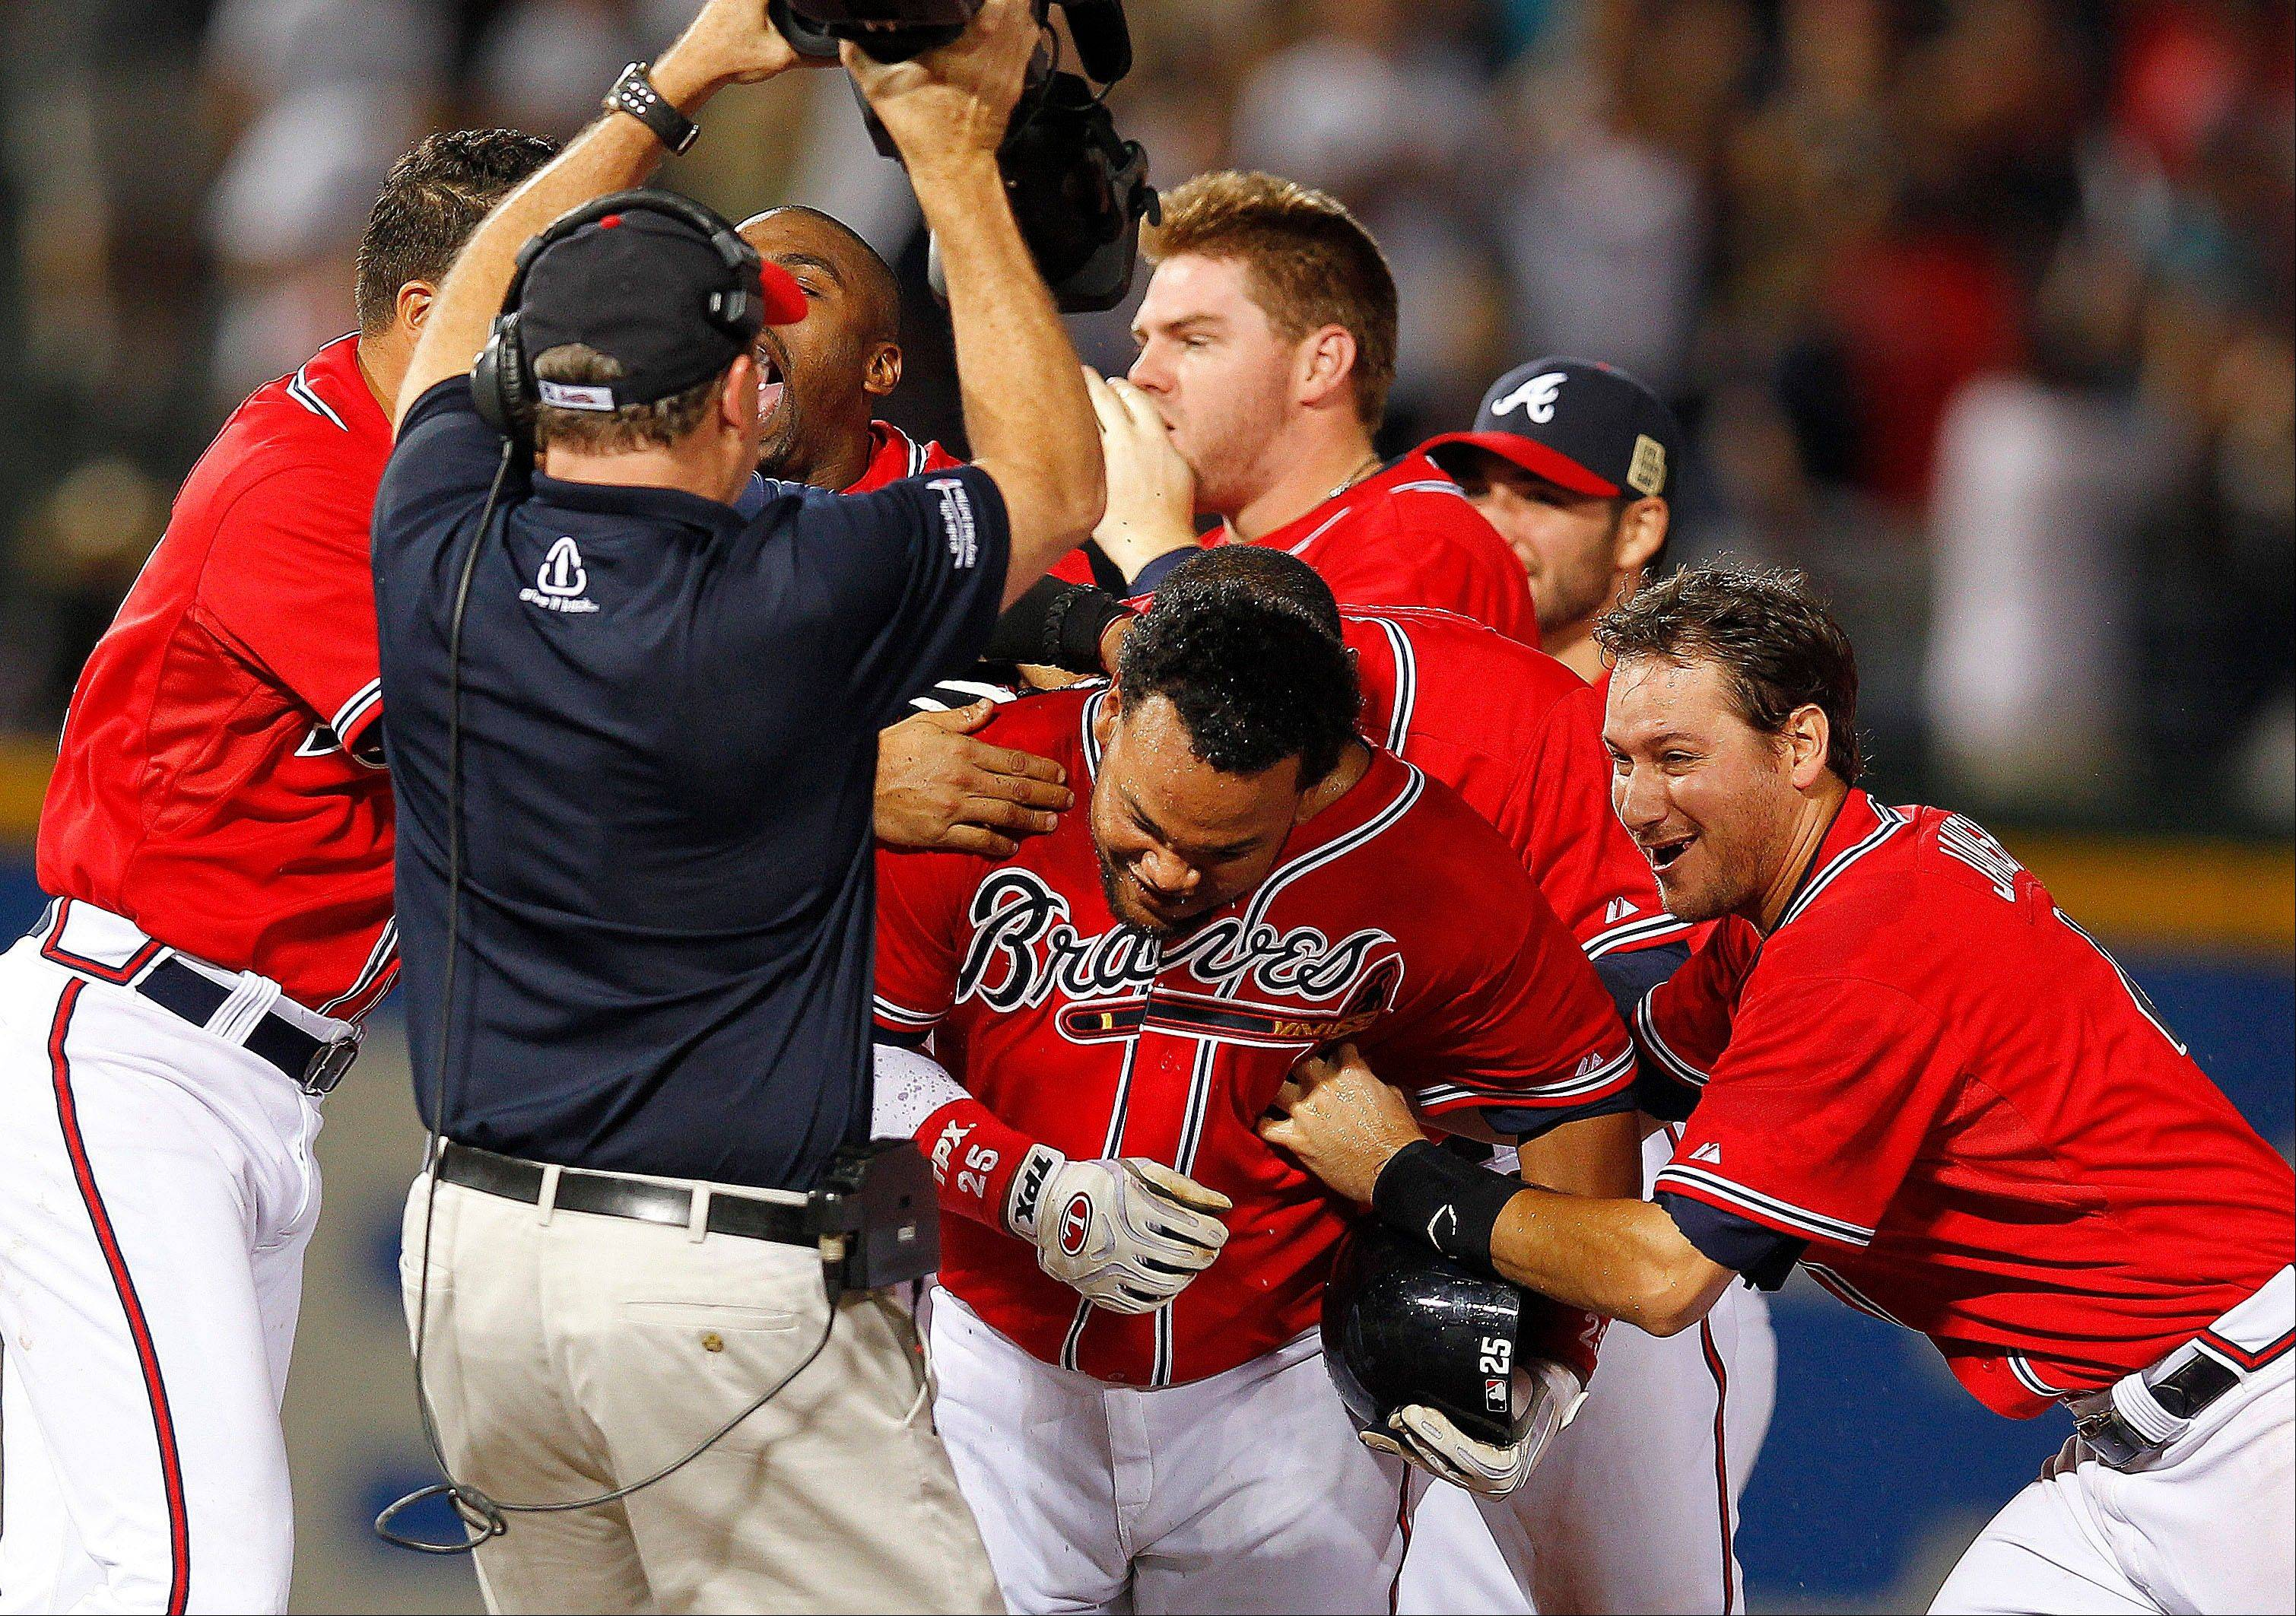 Atlanta pinch hitter Juan Francisco, center, celebrates with teammates after driving in the game-winning run in the 11th inning Friday night at home against the Los Angeles Dodgers.